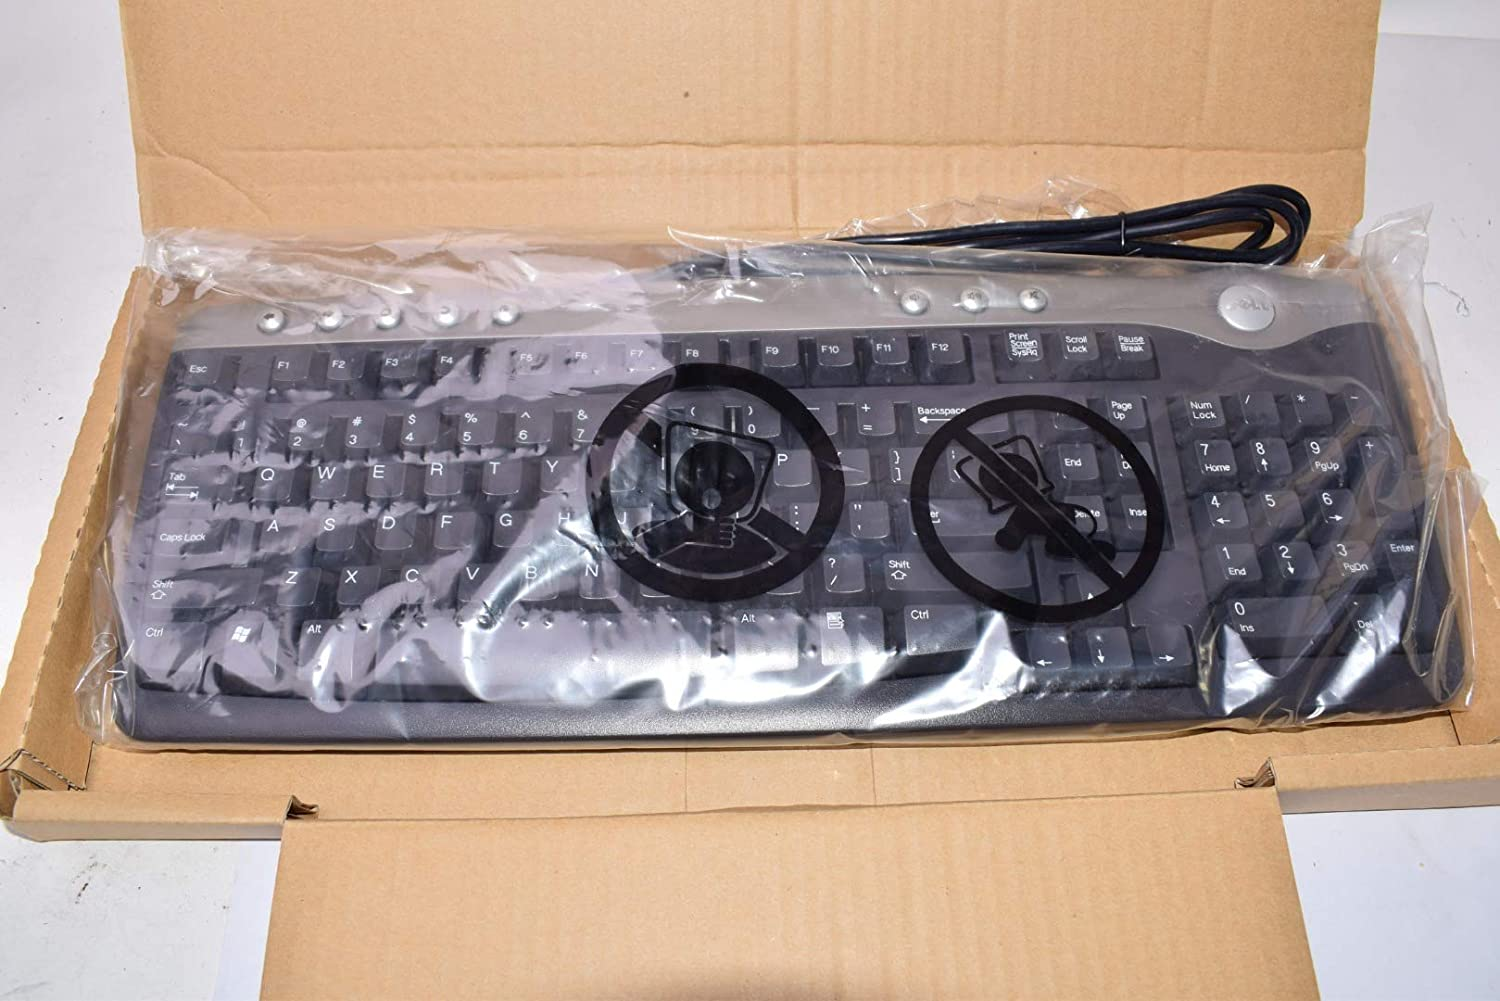 Dell SK 8125 USB Enhanced Multimedia Keyboard